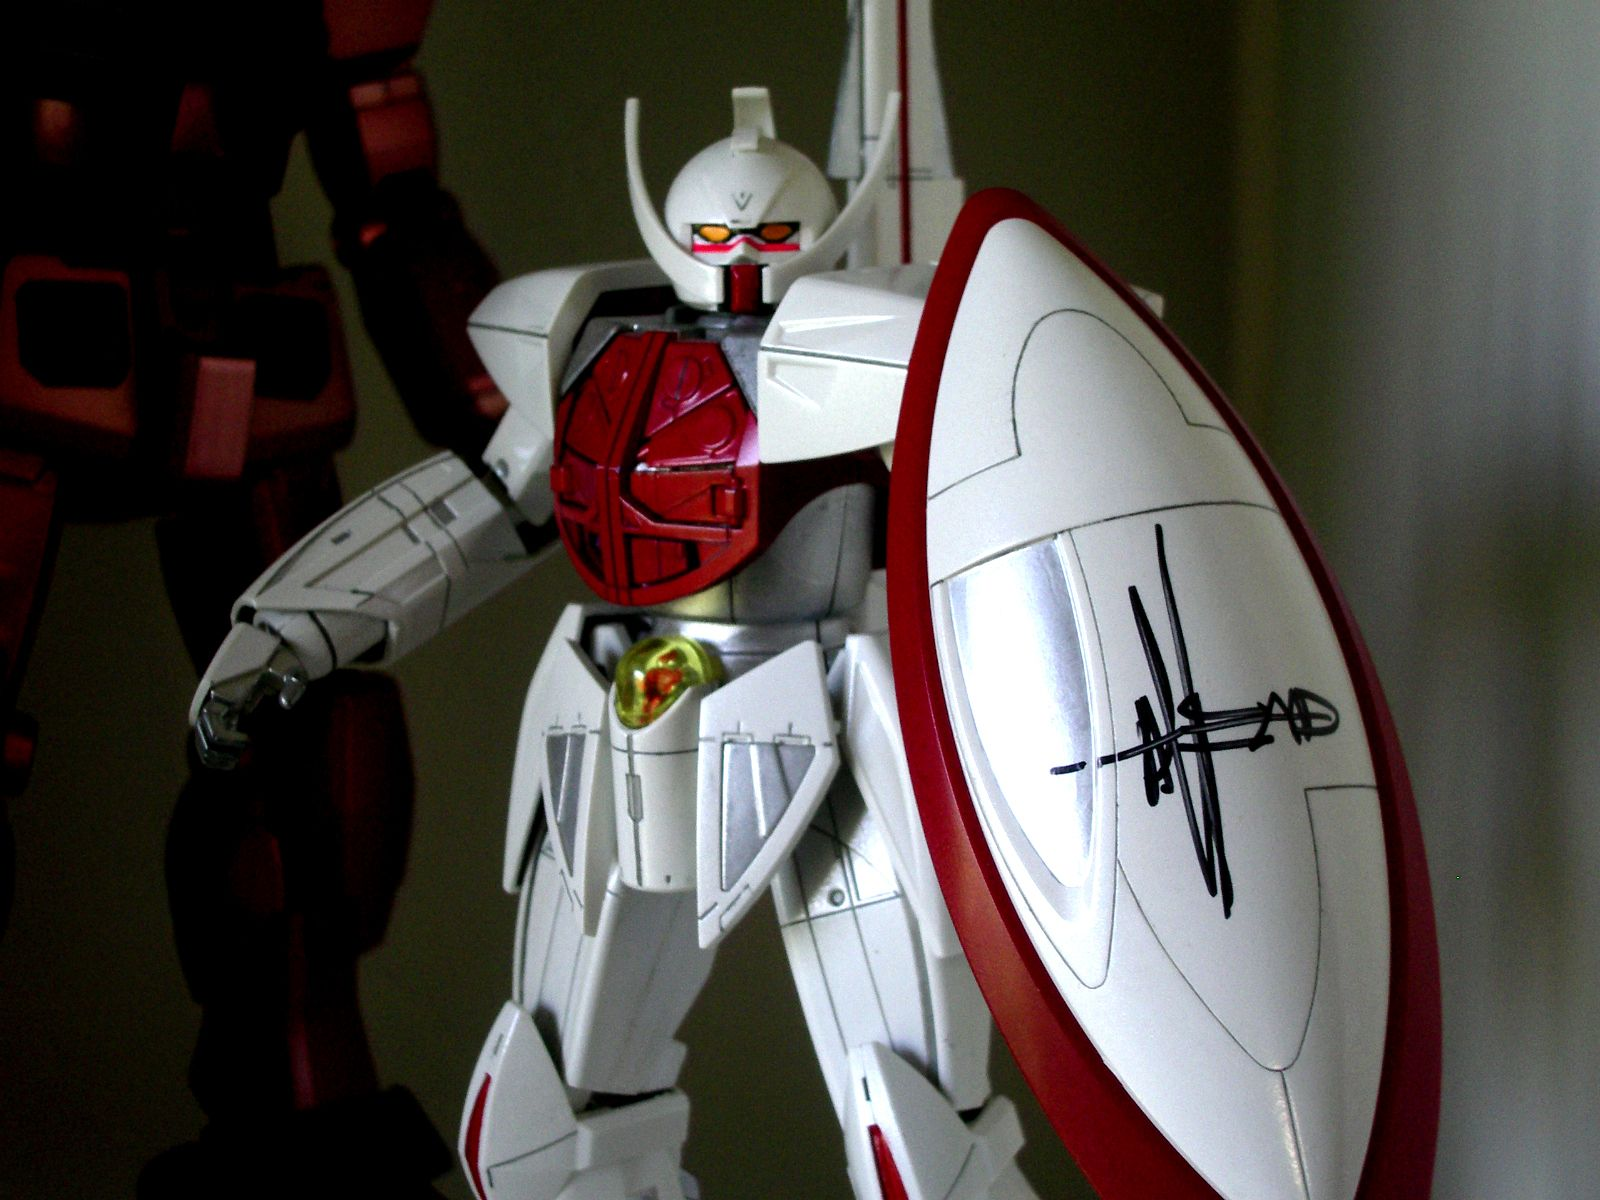 Turn A Gundam kit with the autograph by Mr. Syd Mead